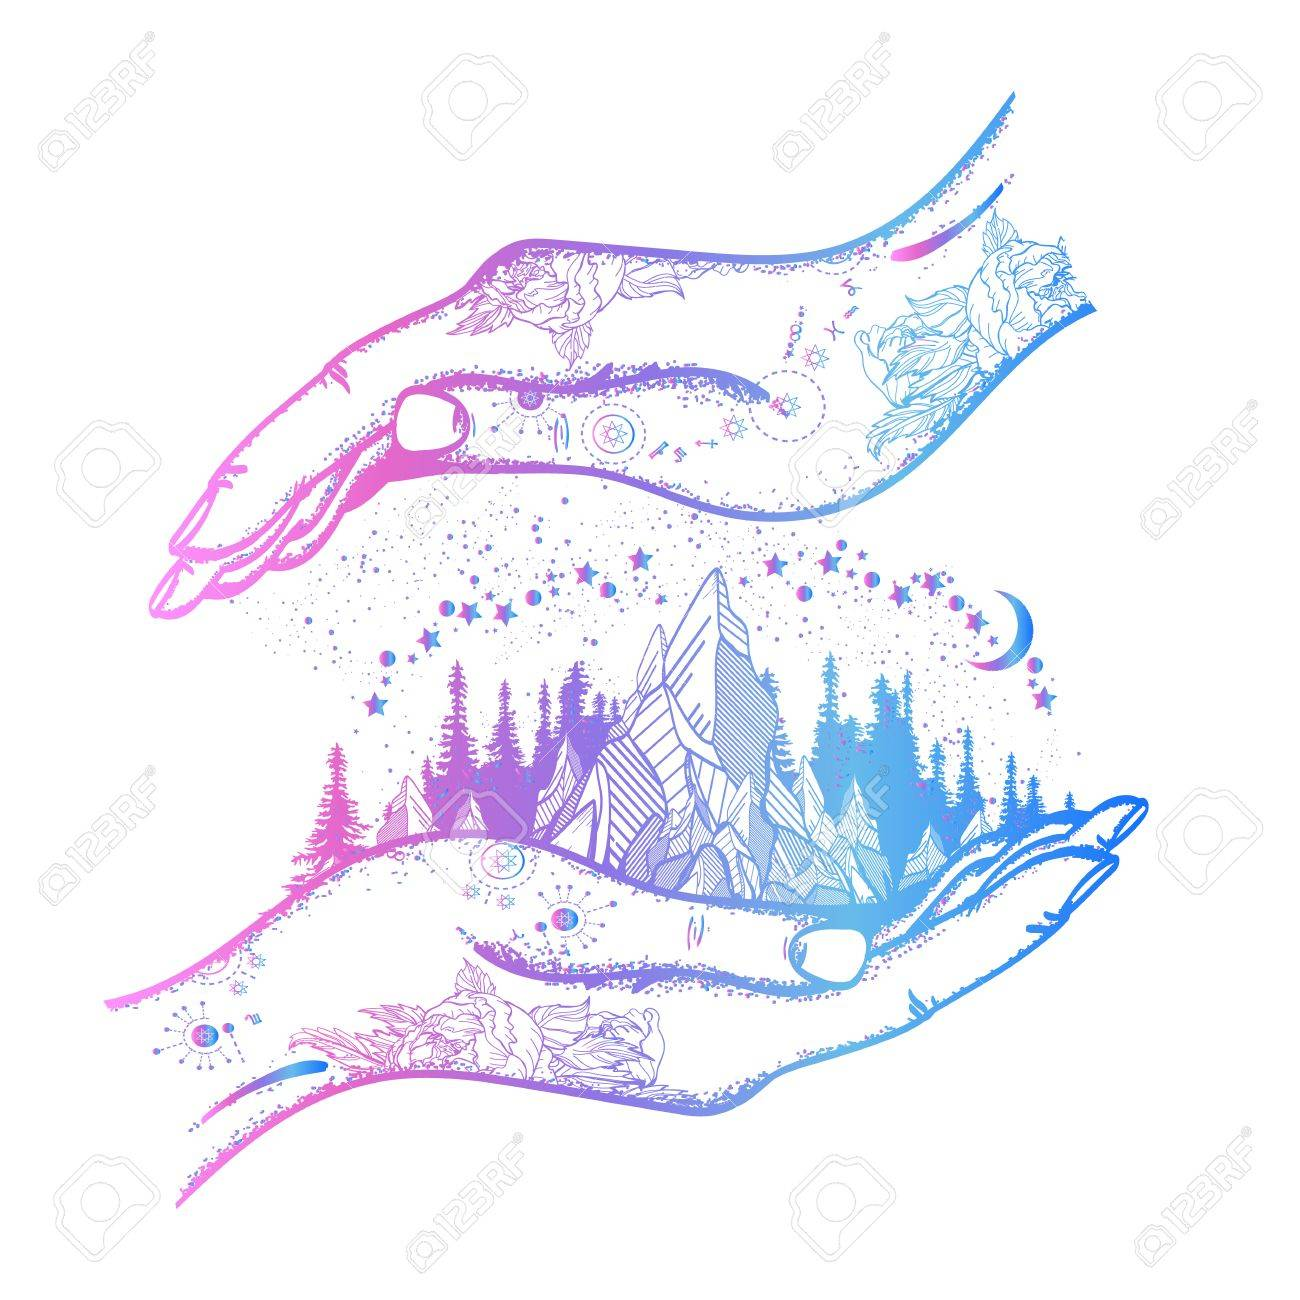 Hand and mountains tattoo and t shirt designmbol of travel hand and mountains tattoo and t shirt designmbol of travel tourism biocorpaavc Images